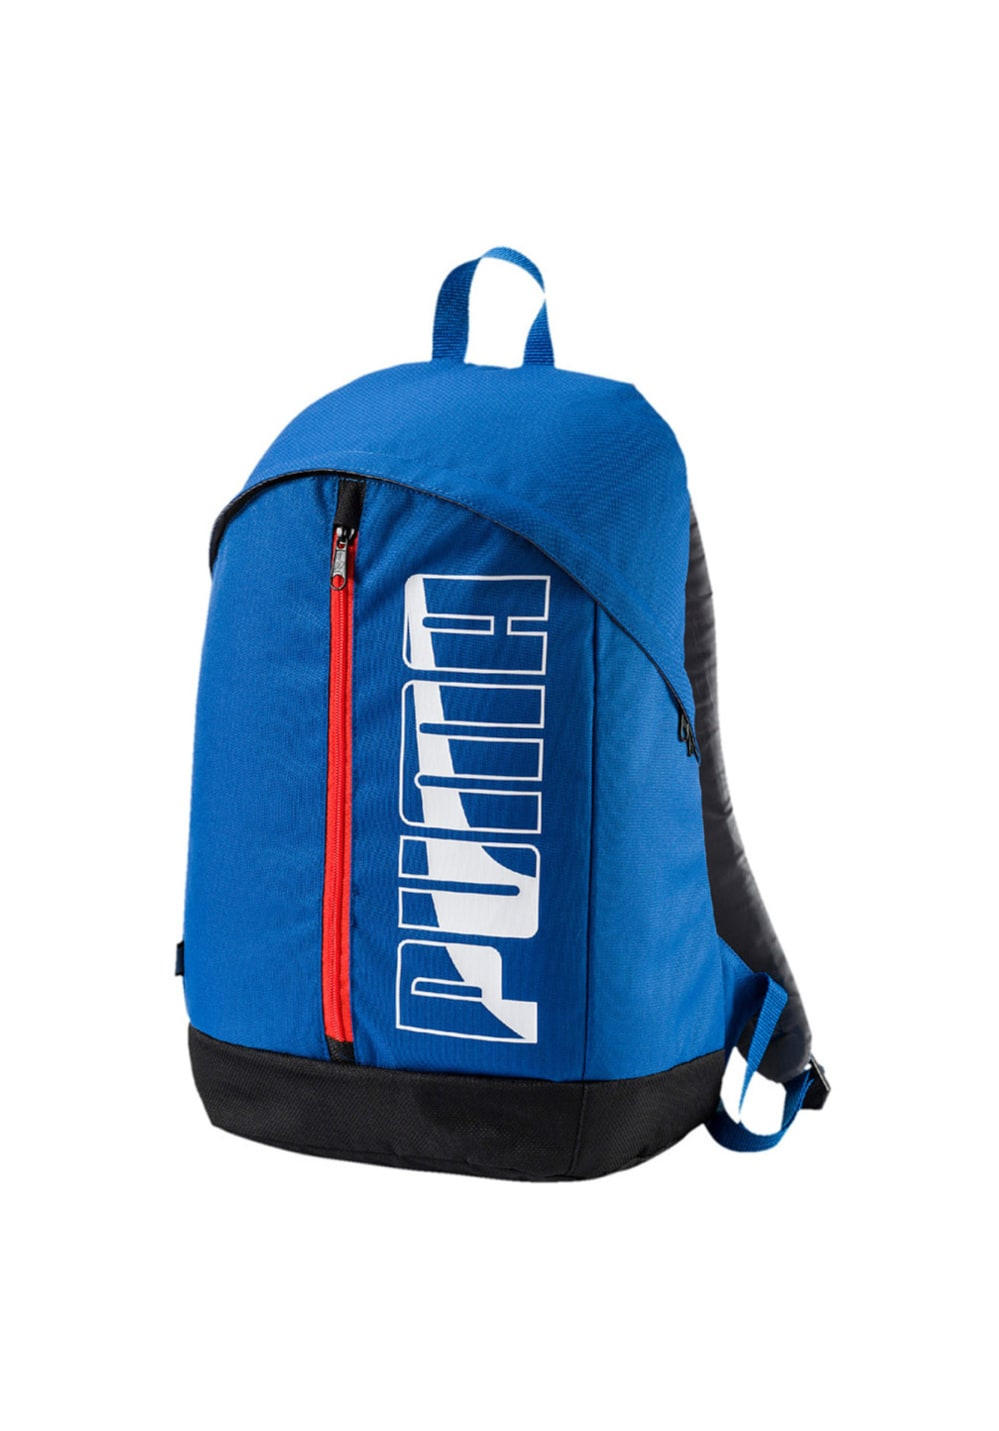 6eea31ff19 ... Puma Pioneer Backpack II - Backpacks - Blue. Back to Overview. -50%